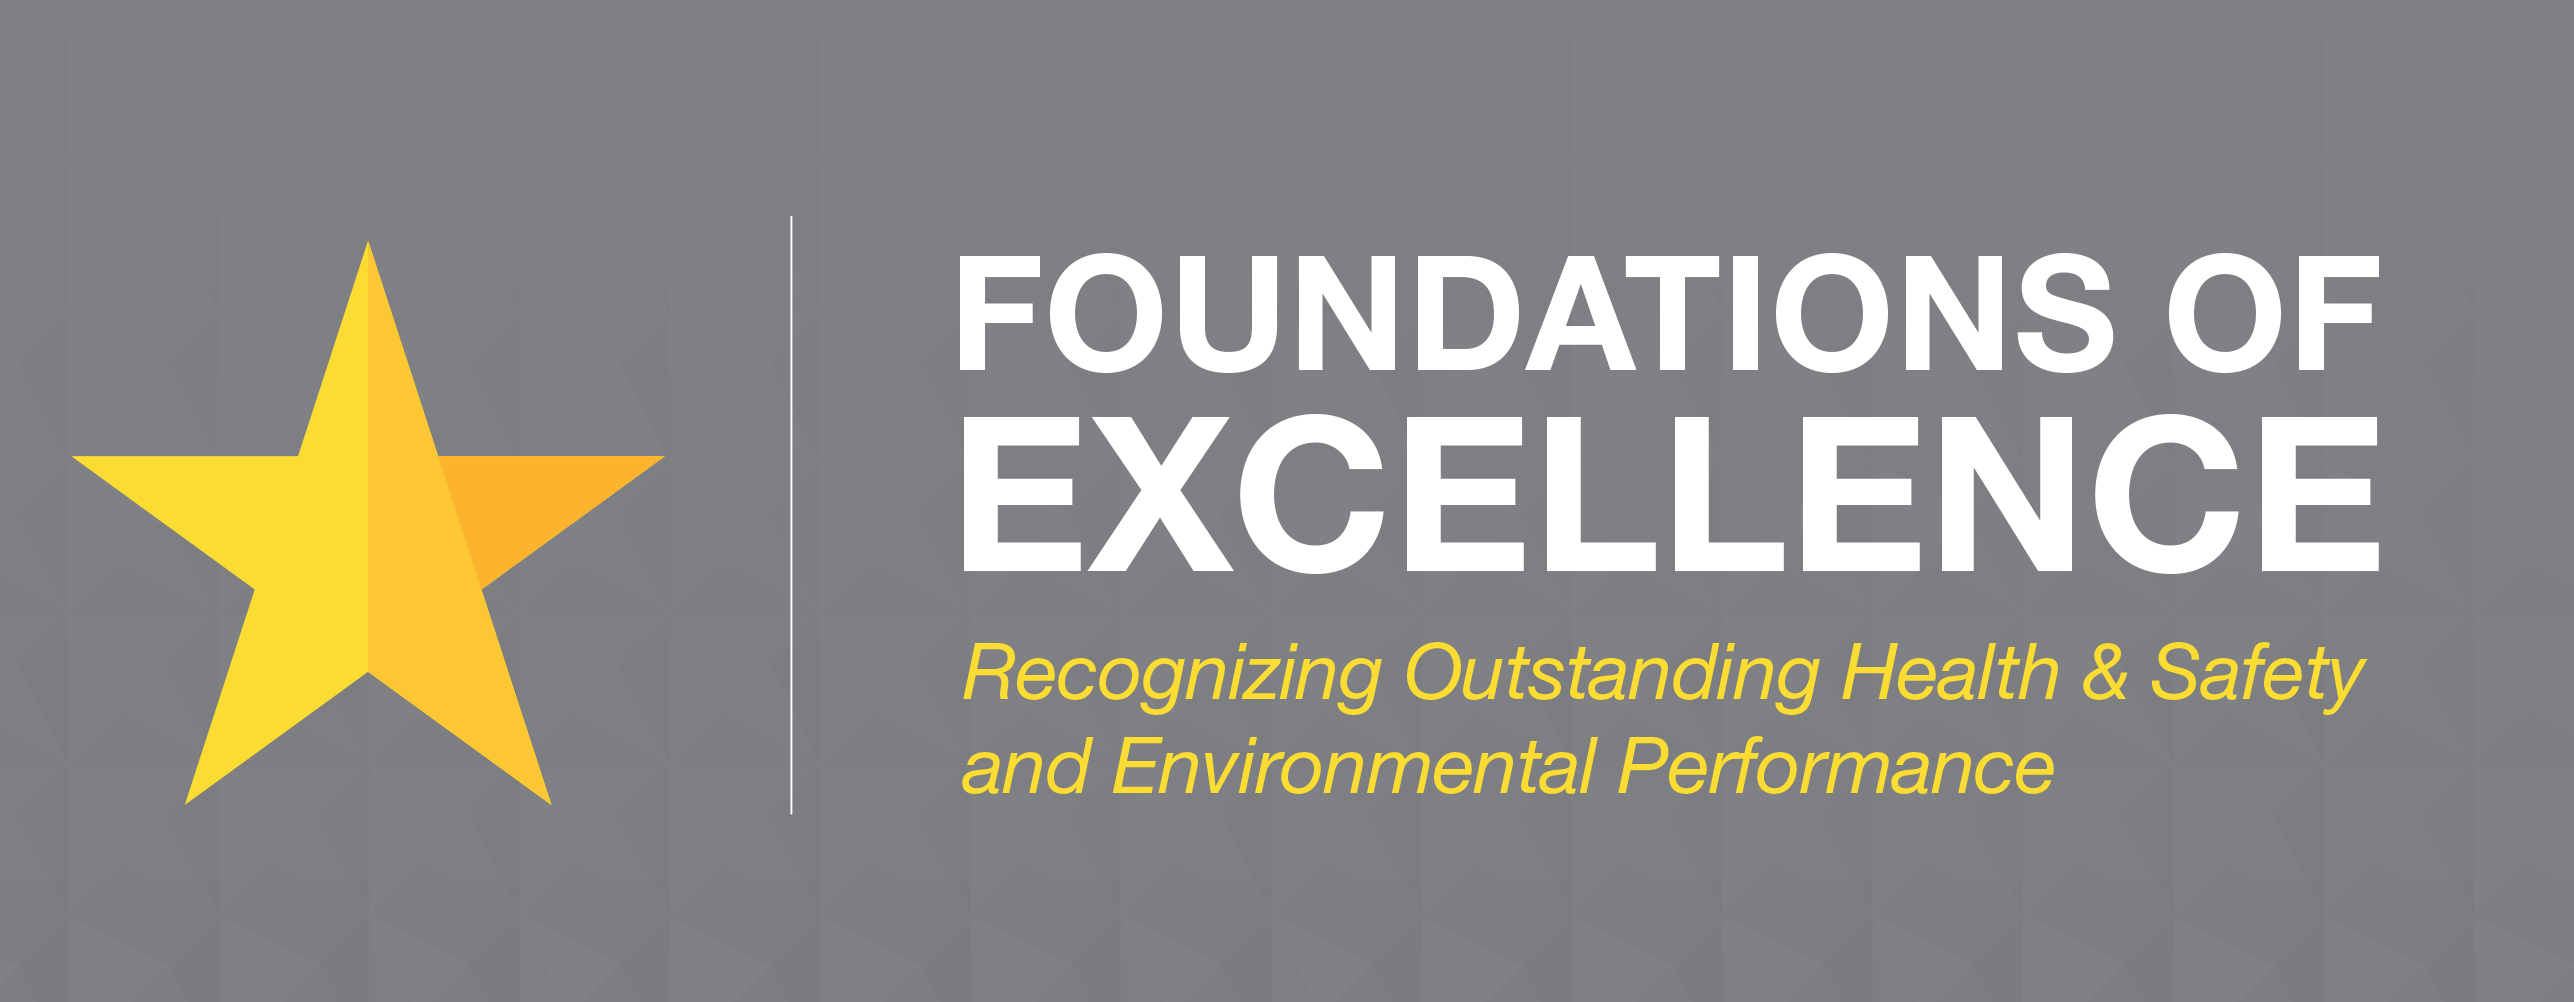 Foundations of Excellence